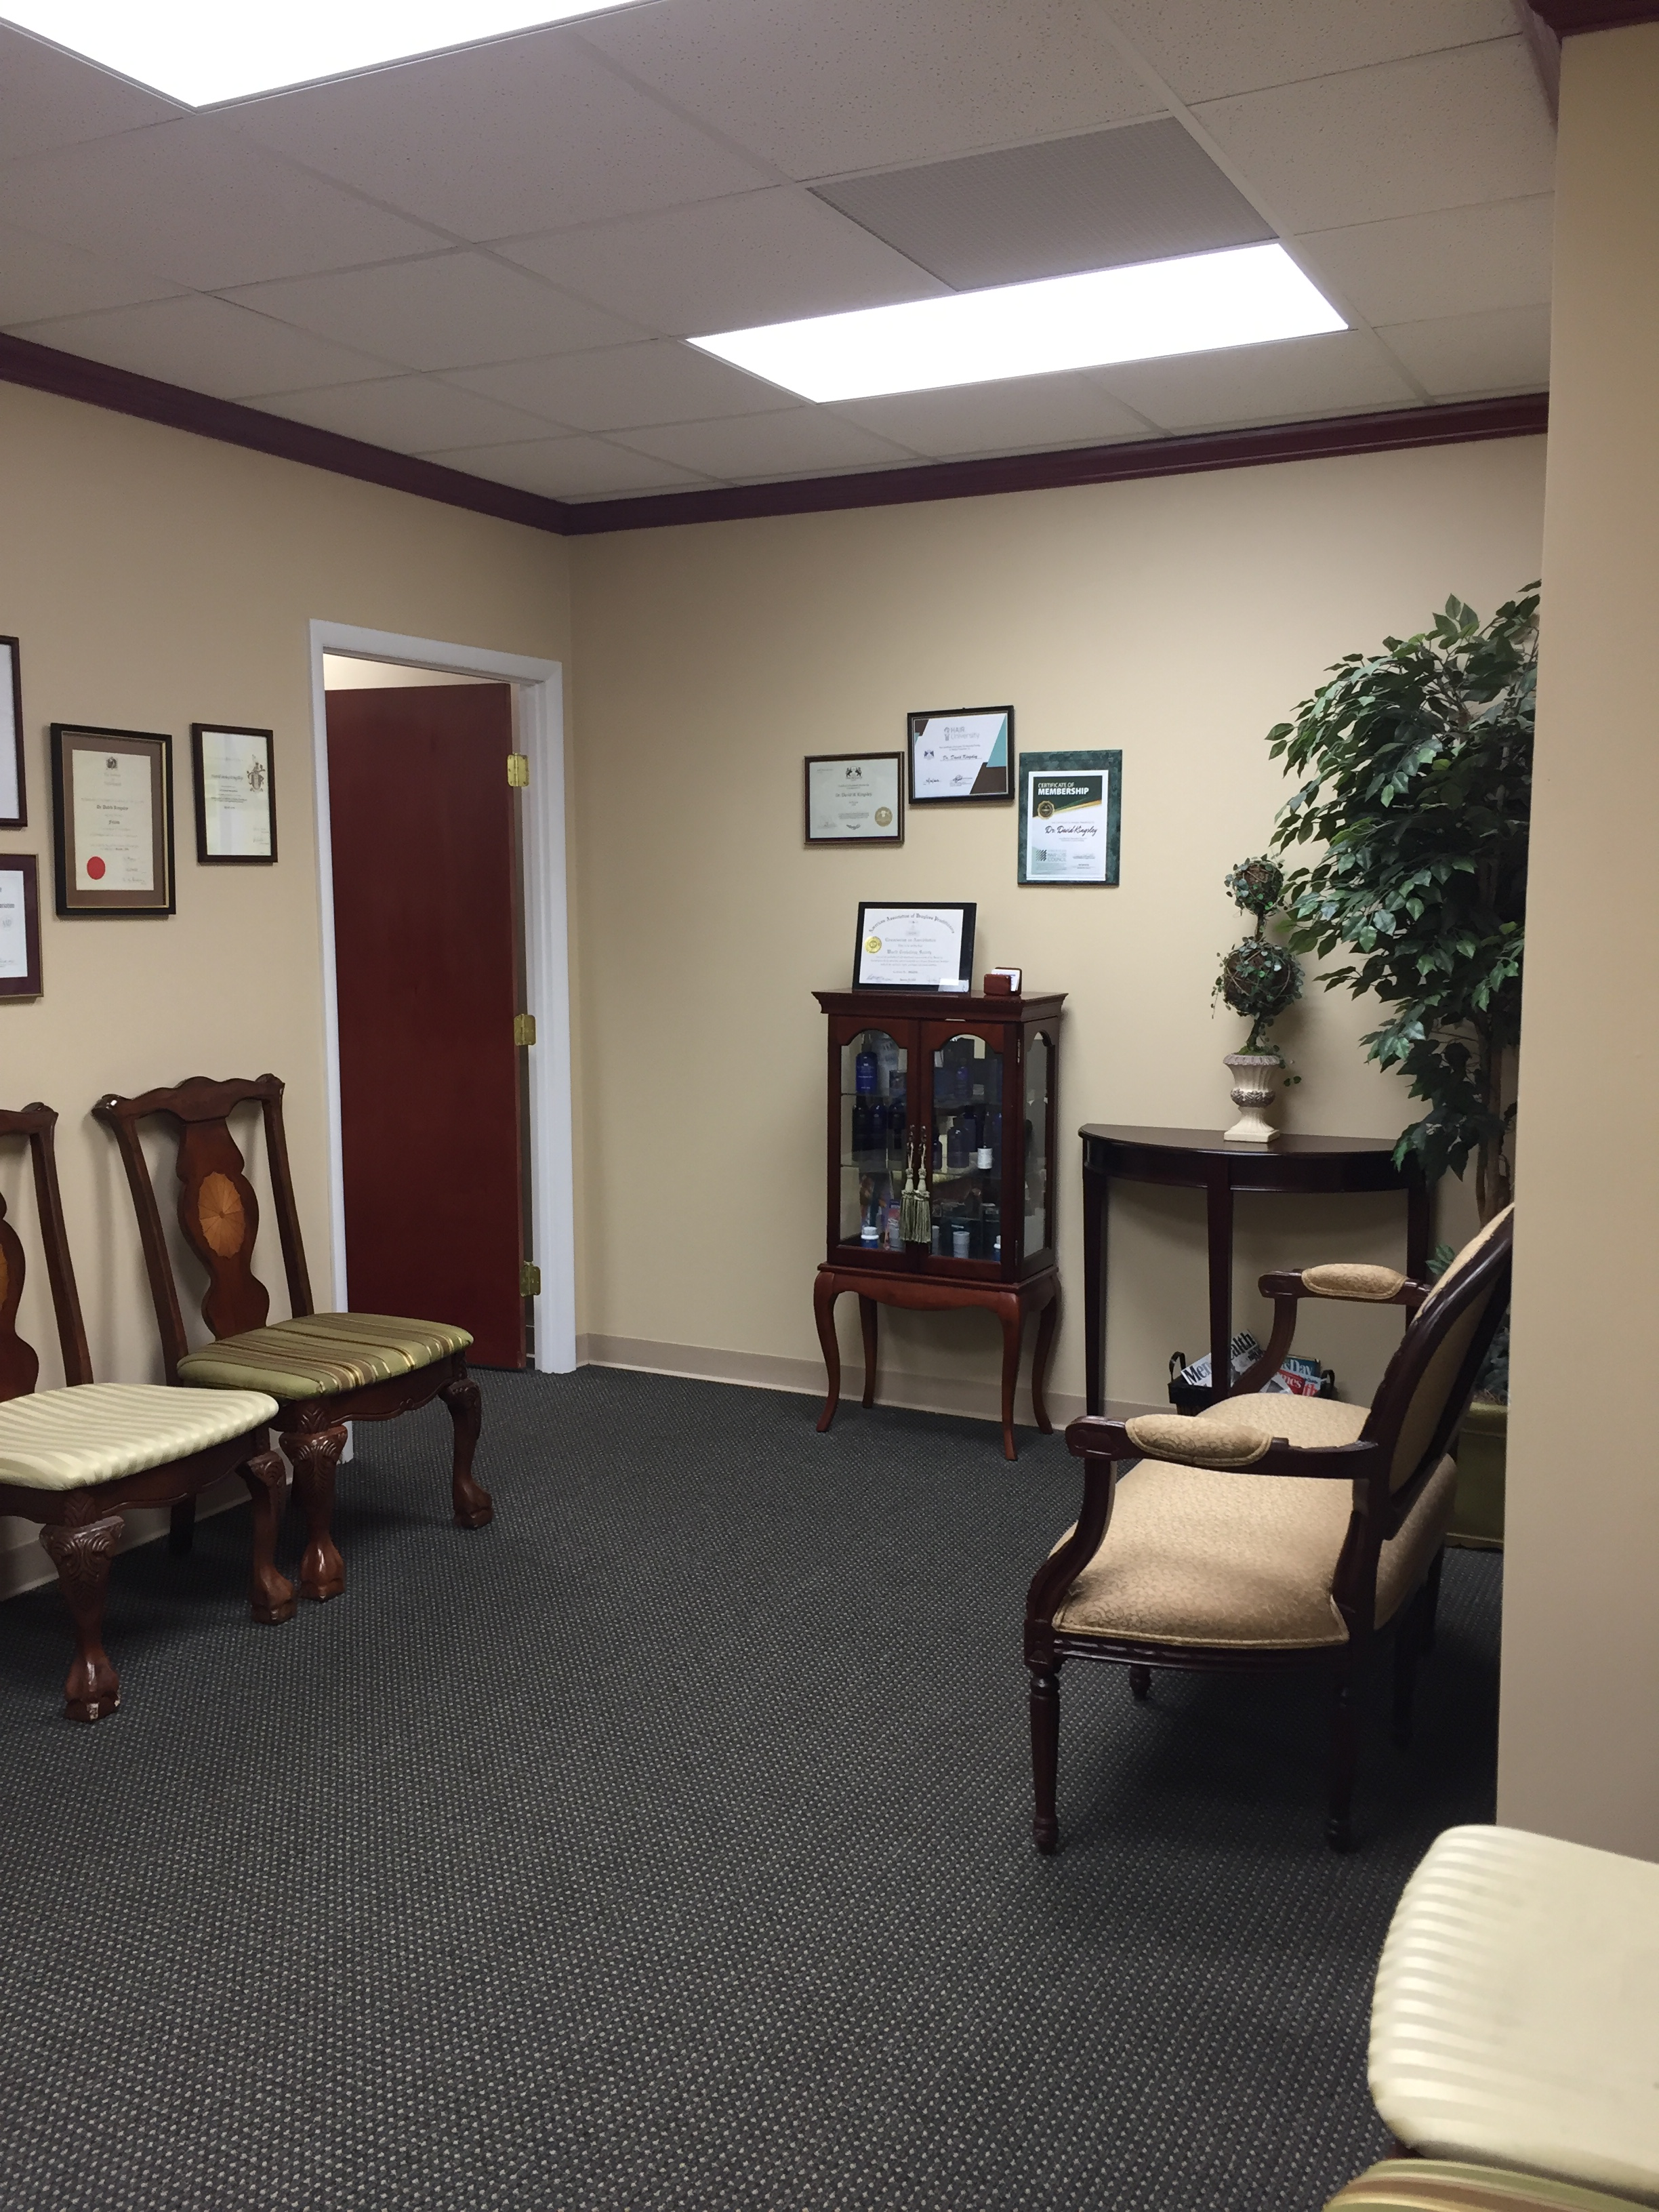 8 TOTAL ROOMS. WAITING/RECEPTION AREA, RECEPTION OFFICE. 4 TREATMENT ROOMS, STAFF ROOM, OFFICE, CHANGING ROOM, 1/2 BATH. CAN SHARE SPACE OR TIME. GOOD FOR MEDICAL OR OTHER PROFESSIONAL USE. GREAT CENTRAL LOCATION, EASY ACCESS TO BUSES & SI EXPRESSWAY..  TYPE OF LEASE: SUBLET EXISTING 10 YEAR LEASE W/9 YEAR REMAINING W/NO INCREASES.